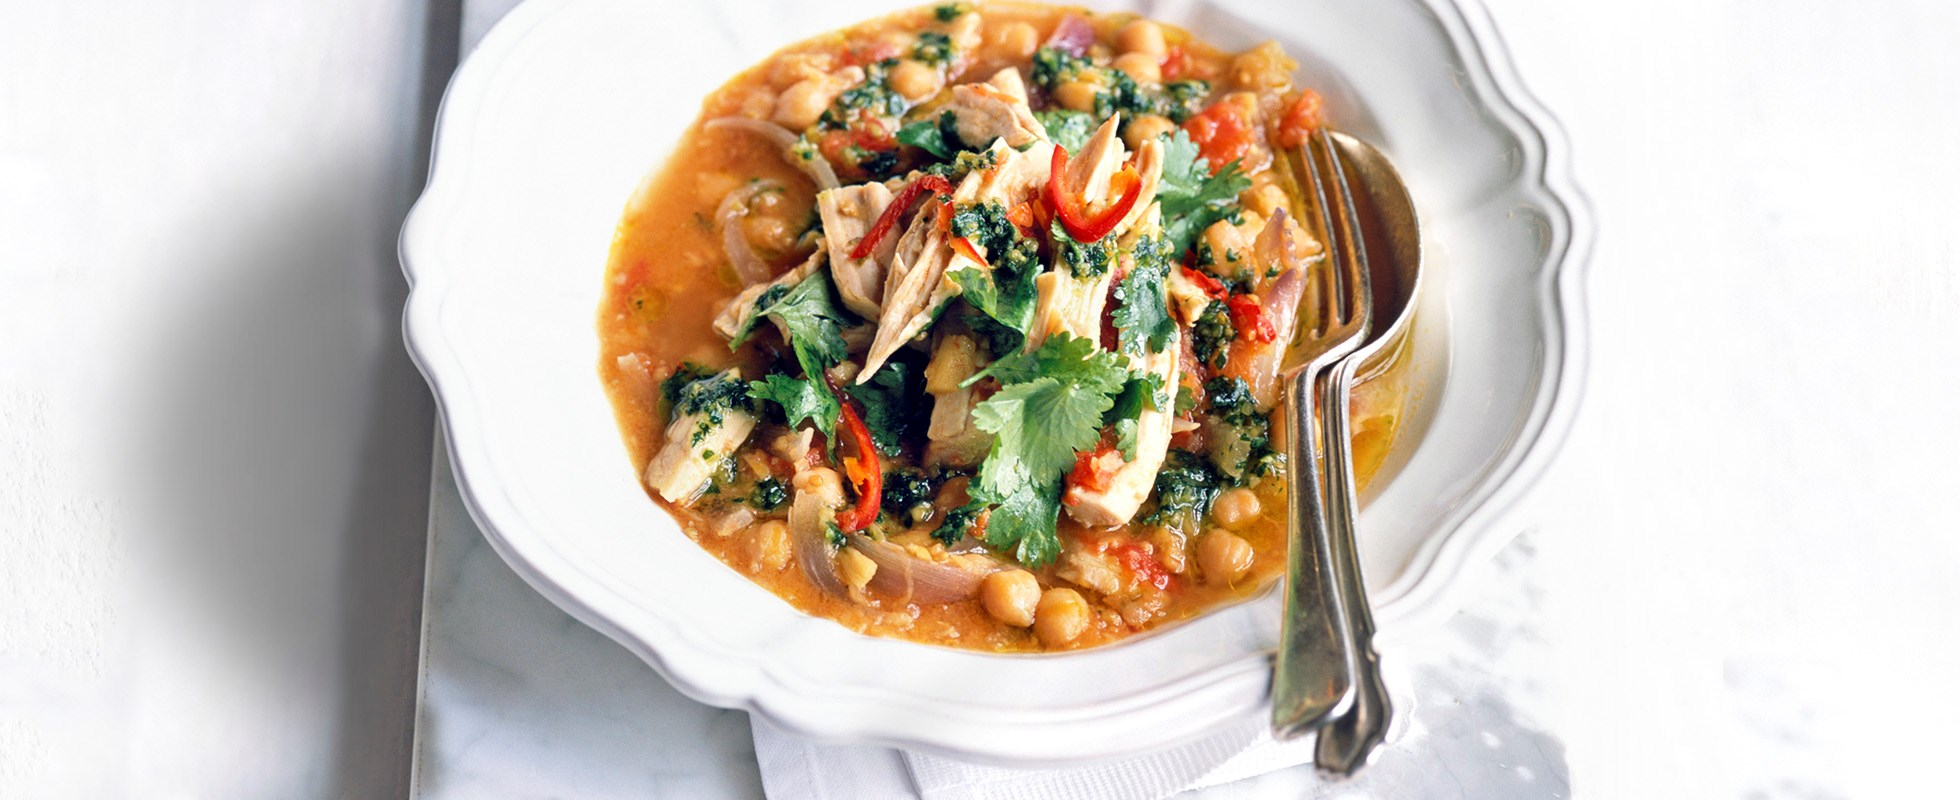 Turkey and chickpea stew